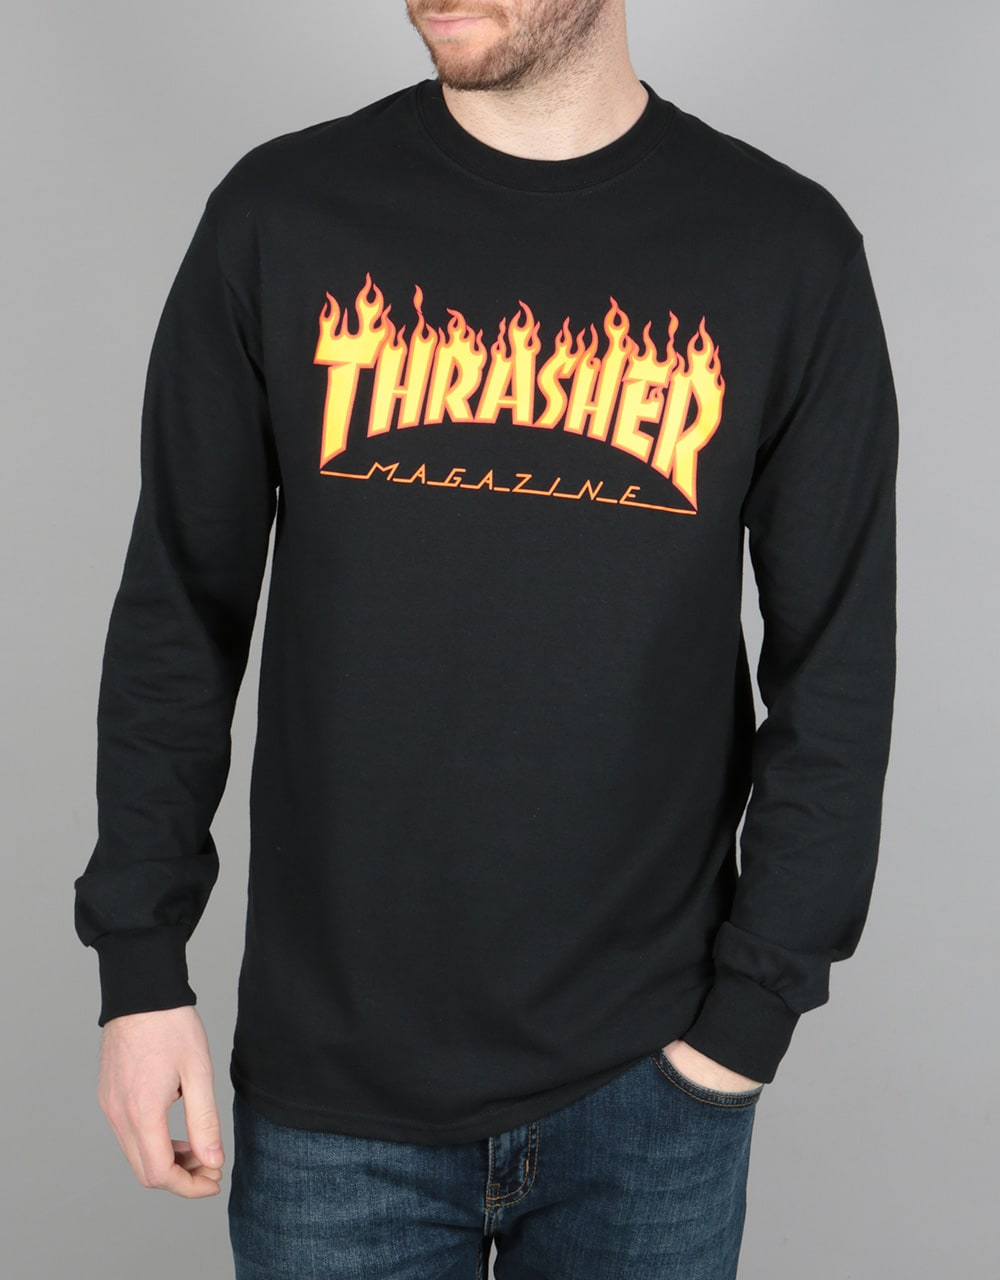 Black t shirt photo - Thrasher Flame Logo L S T Shirt Black